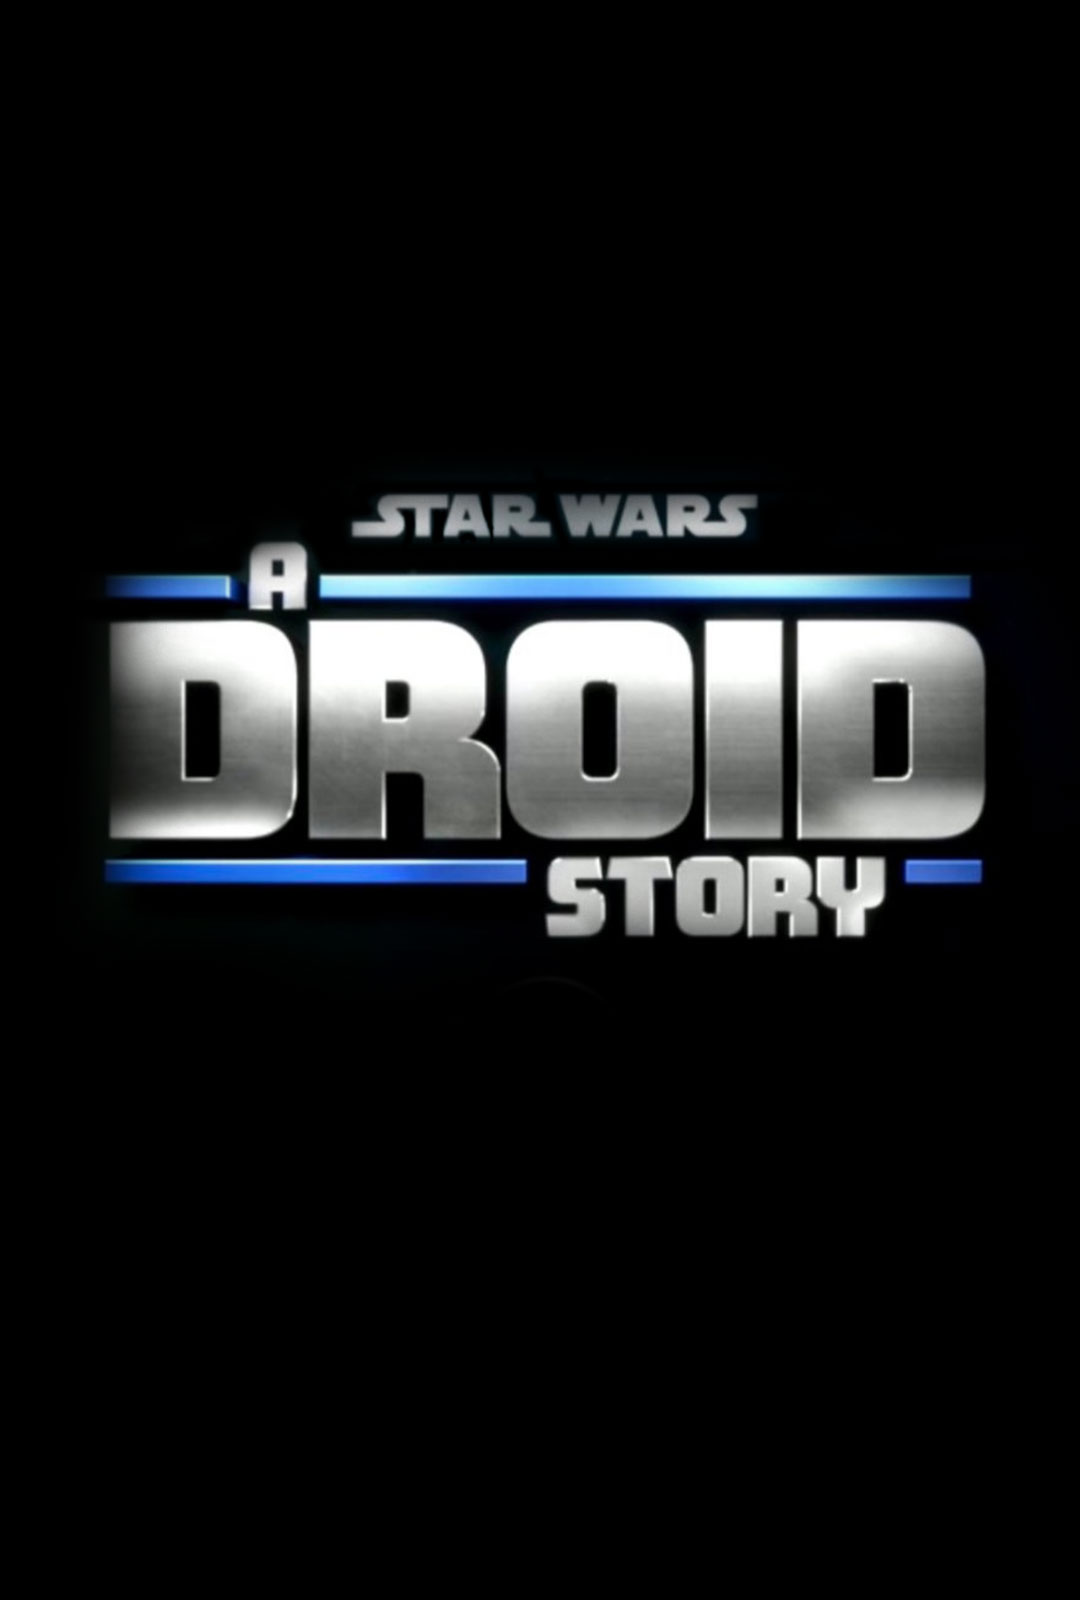 affiche poster droid story star wars disney